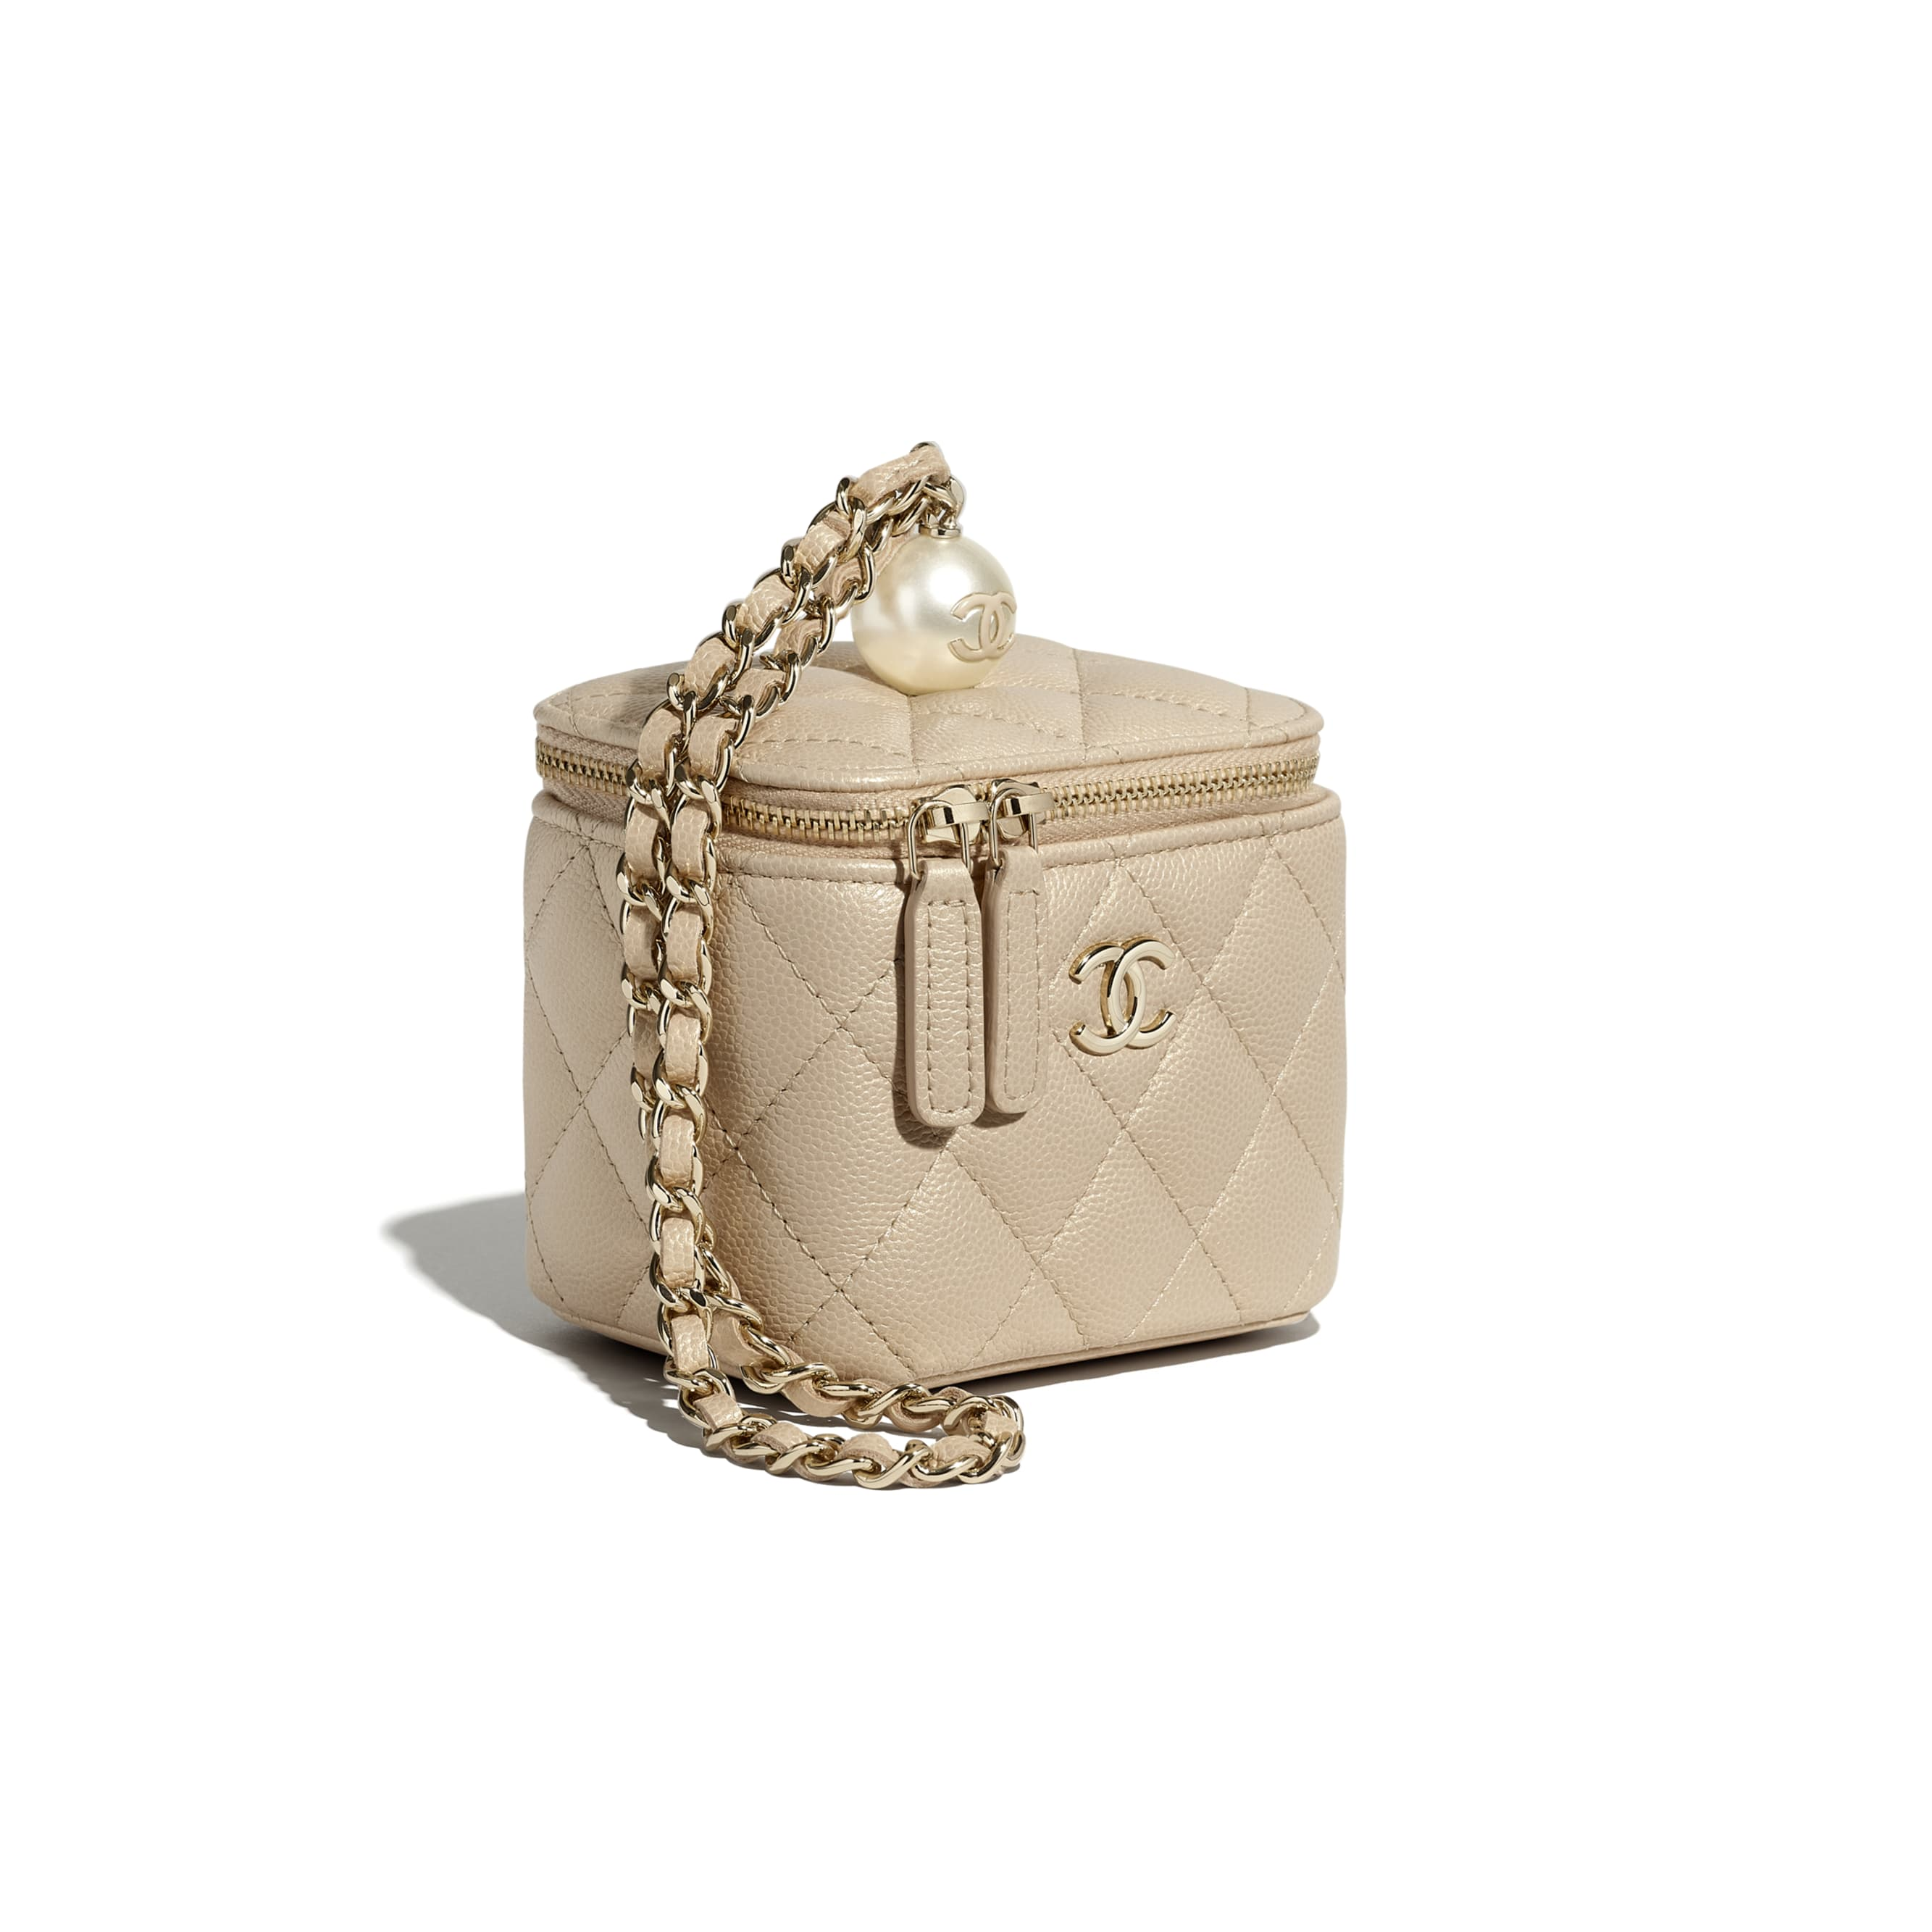 Small Vanity with Chain - Beige - Iridescent Grained Calfskin, Imitation Pearls & Gold-Tone Metal - CHANEL - Other view - see standard sized version